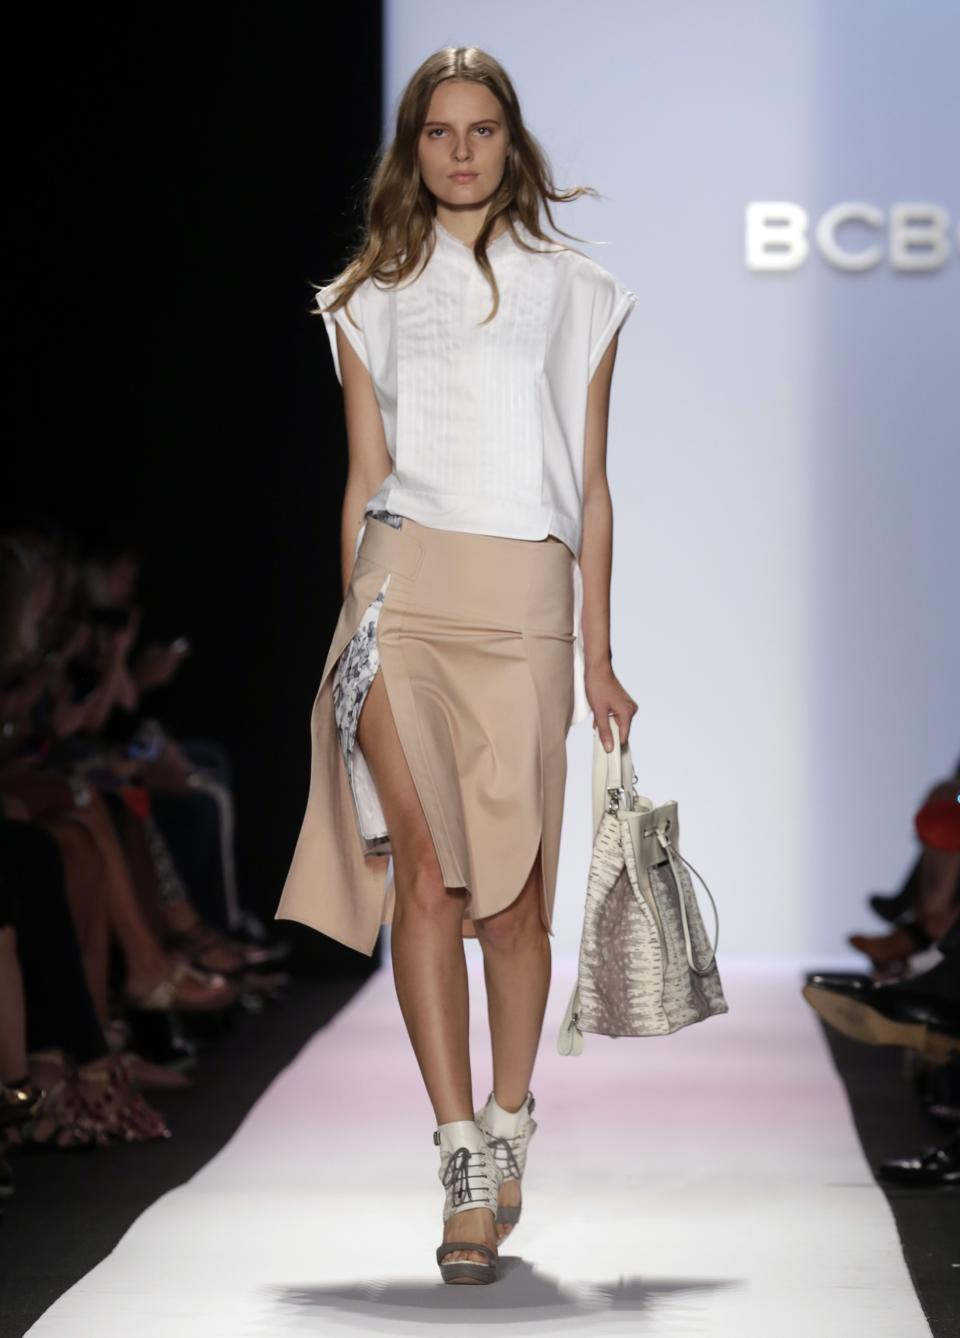 The BCBG MAX AZRIA Spring 2014 collection is modeled during Fashion Week in New York, Thursday, Sept. 5, 2013. (AP Photo/Richard Drew)